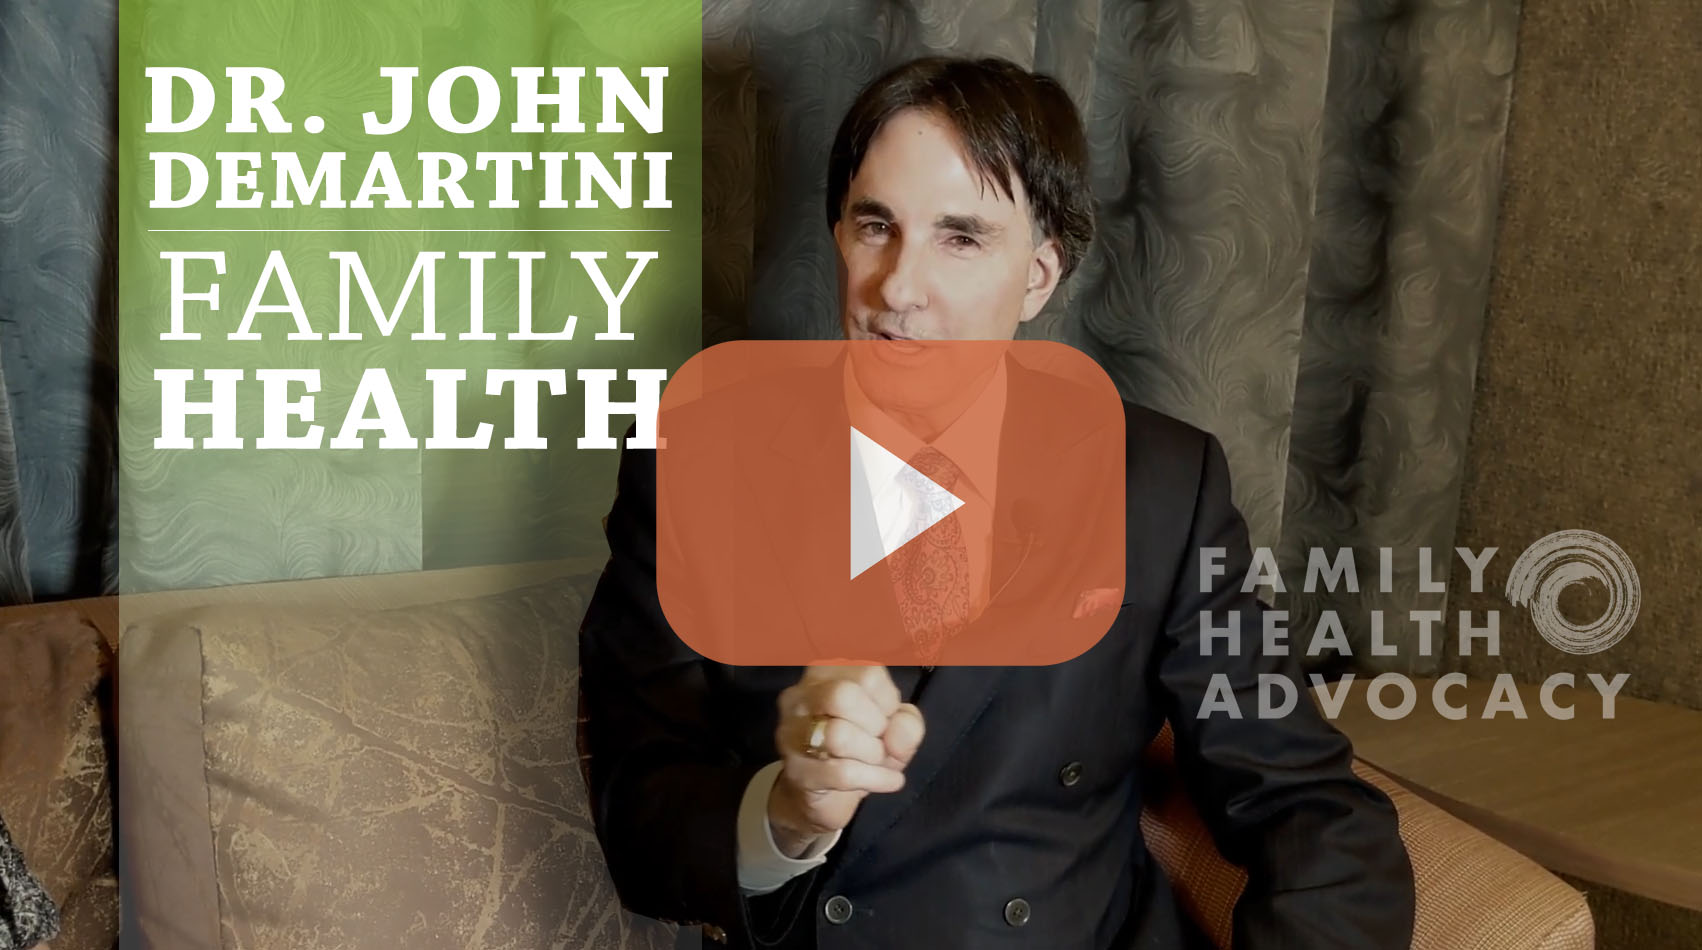 Dr. John Demartini Discusses Mental Health, ADD, Family Relationships